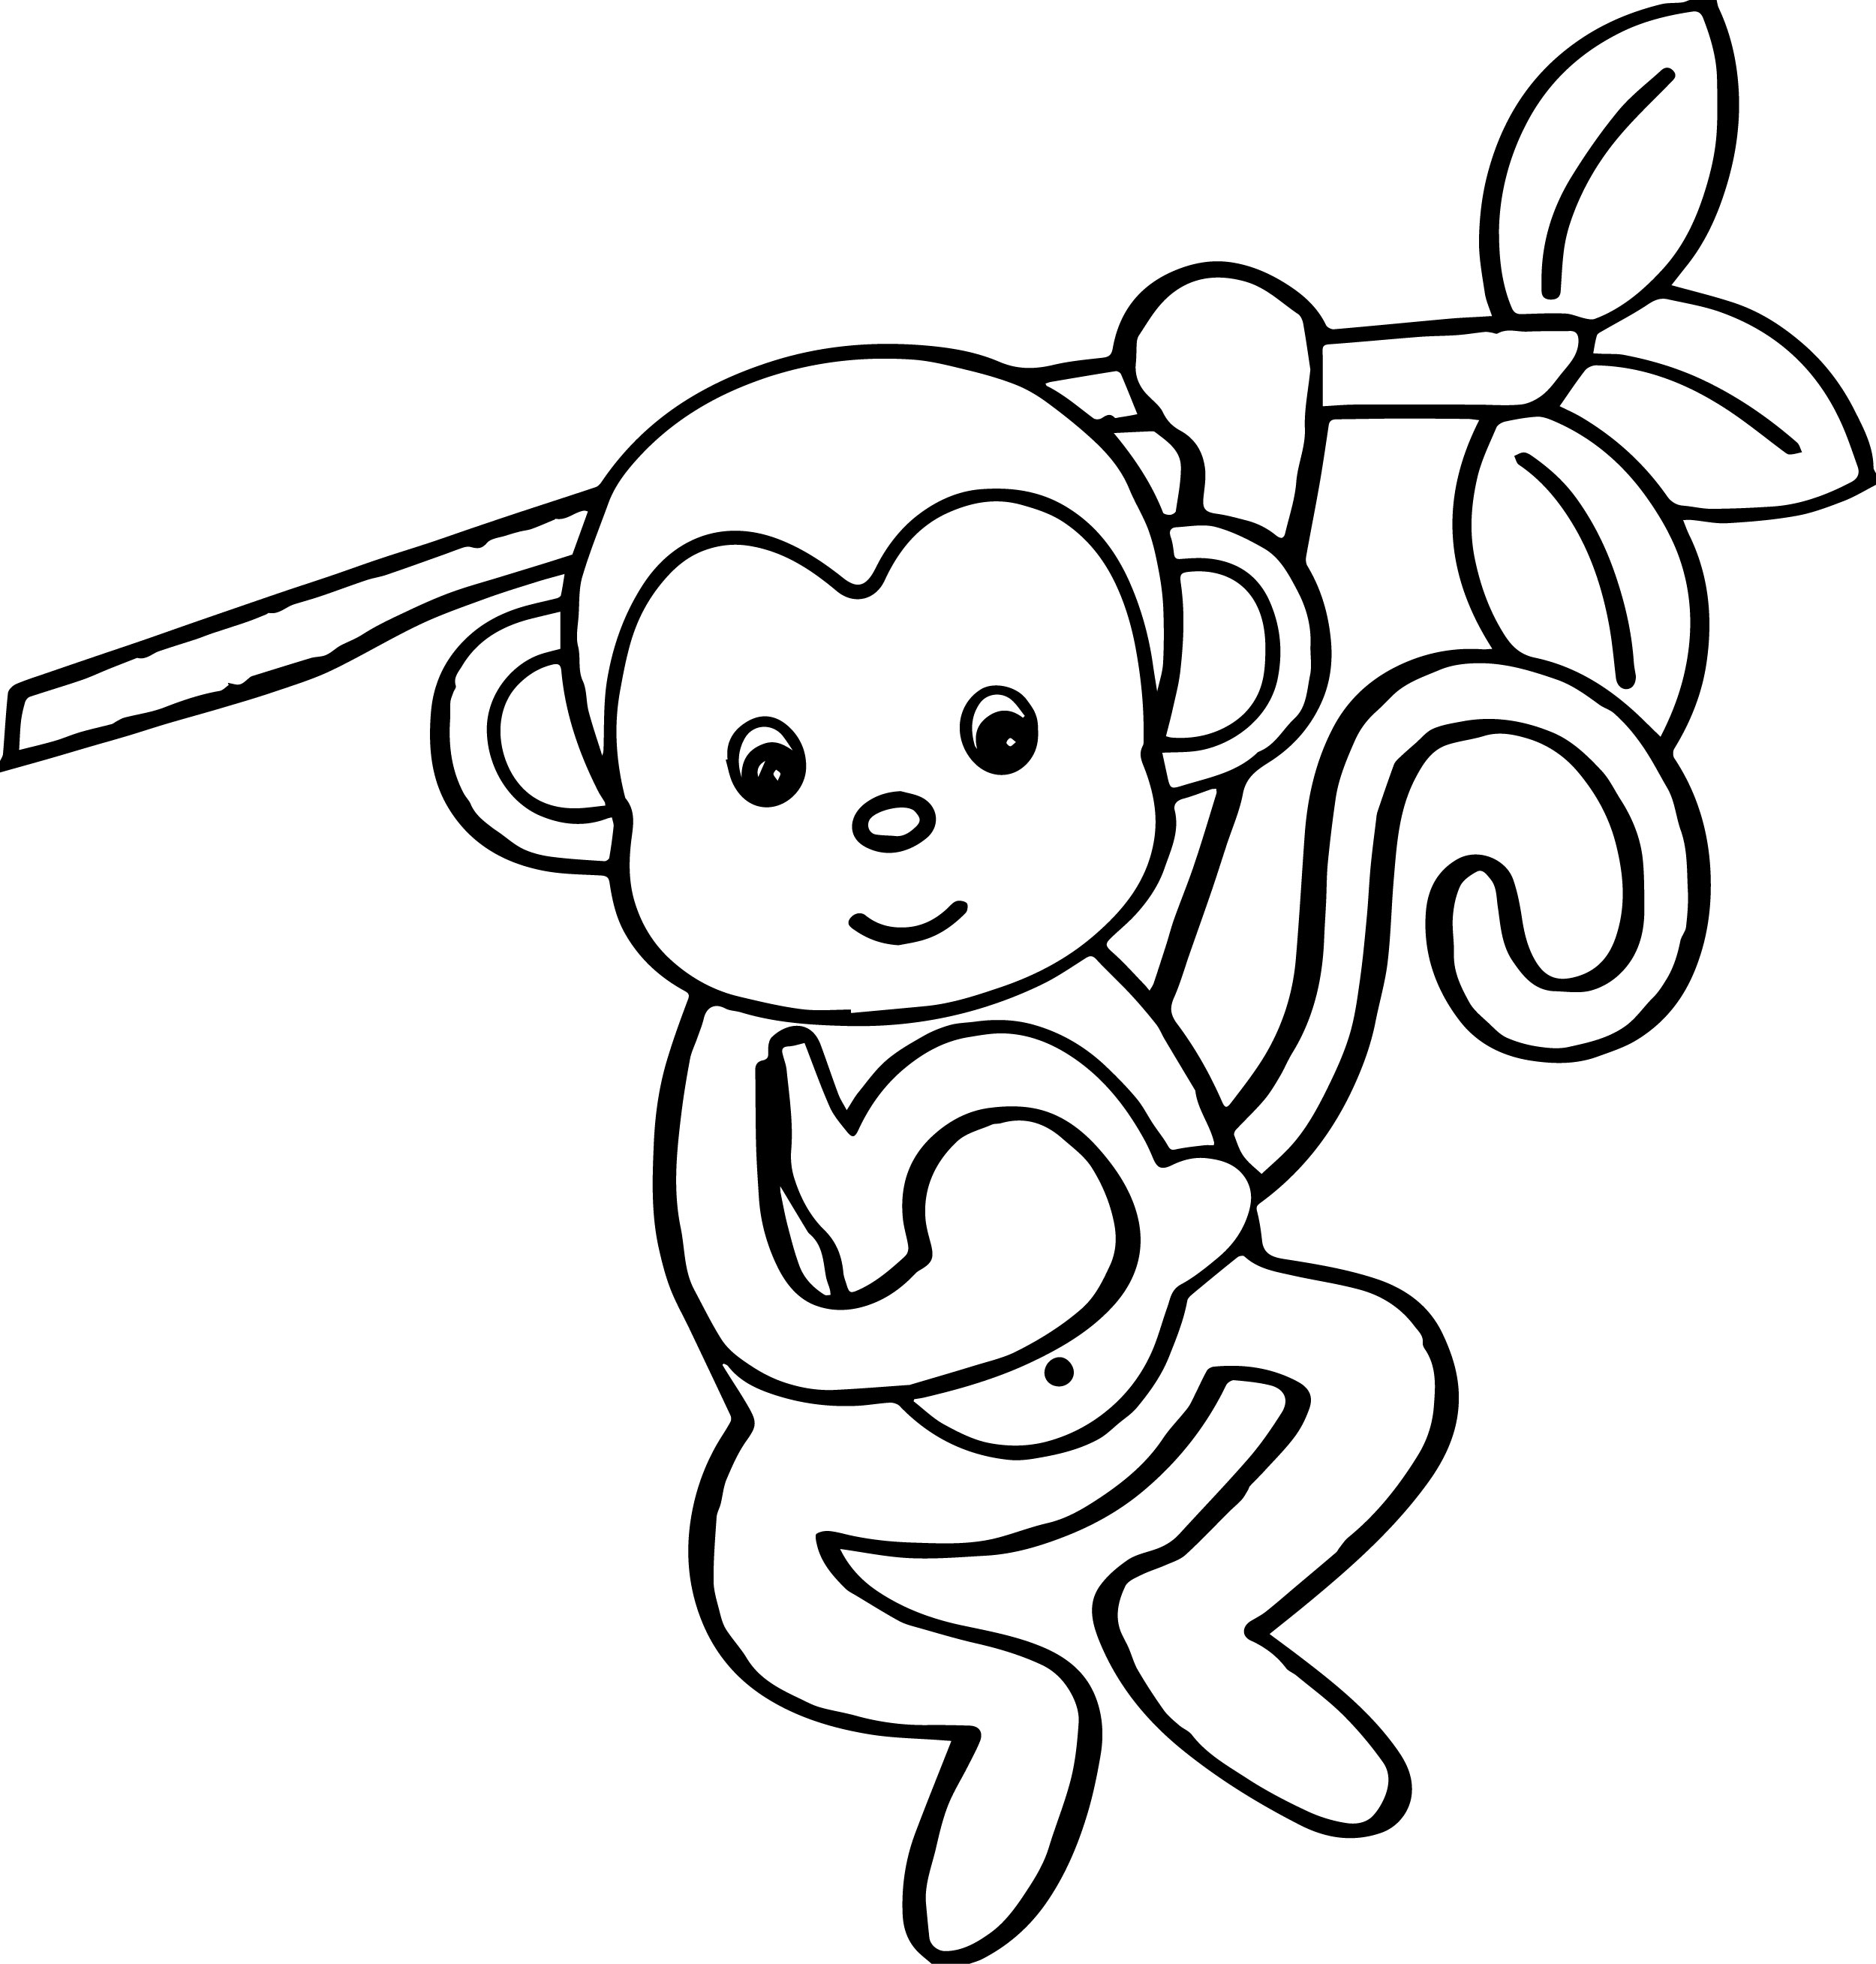 2500x2617 Girl Monkey Coloring Pages To Print Coloring For Kids